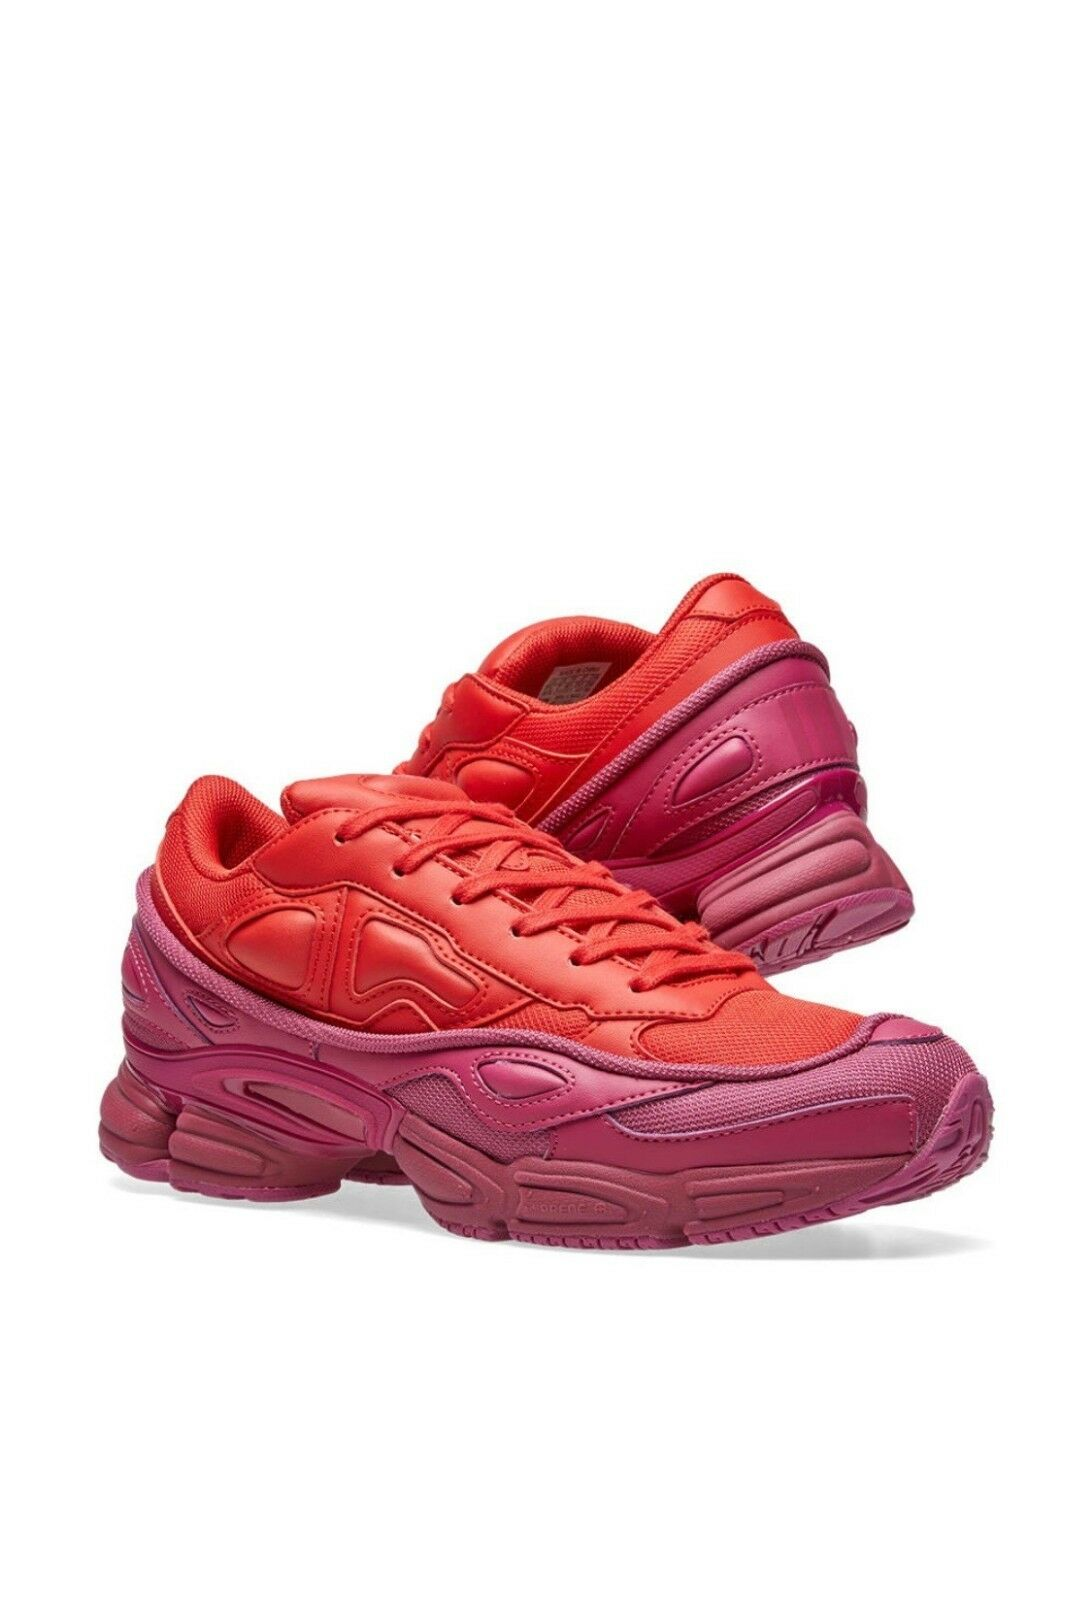 Adidas X Raf Simons RS Ozweego III Red Pink  FW18 Available now